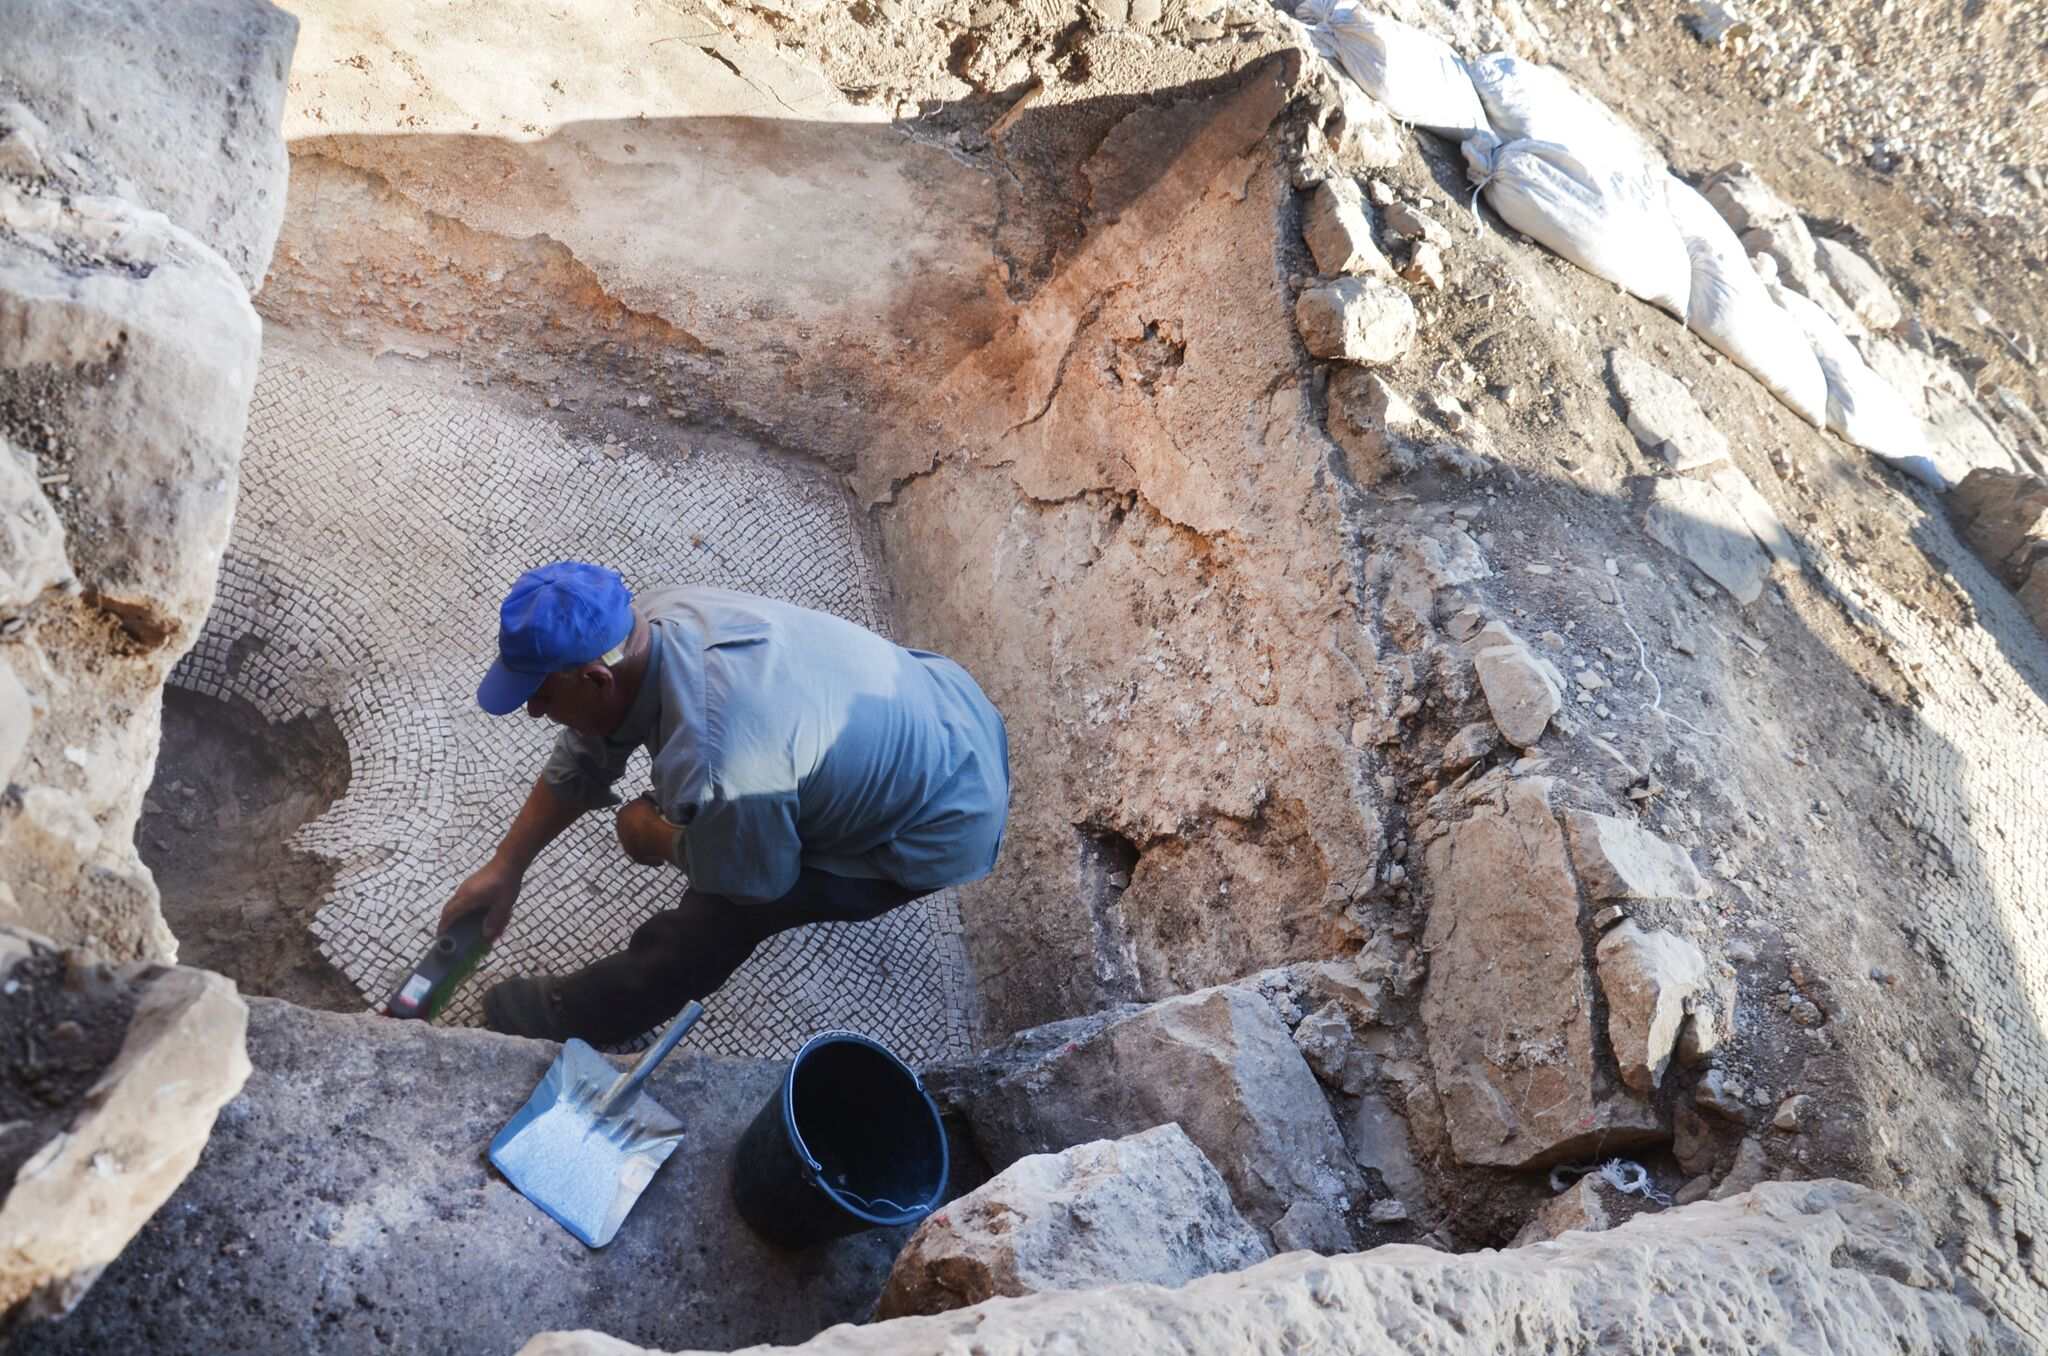 A laborer in the excavation cleaning a collecting vat of a winepress that was revealed at the site.